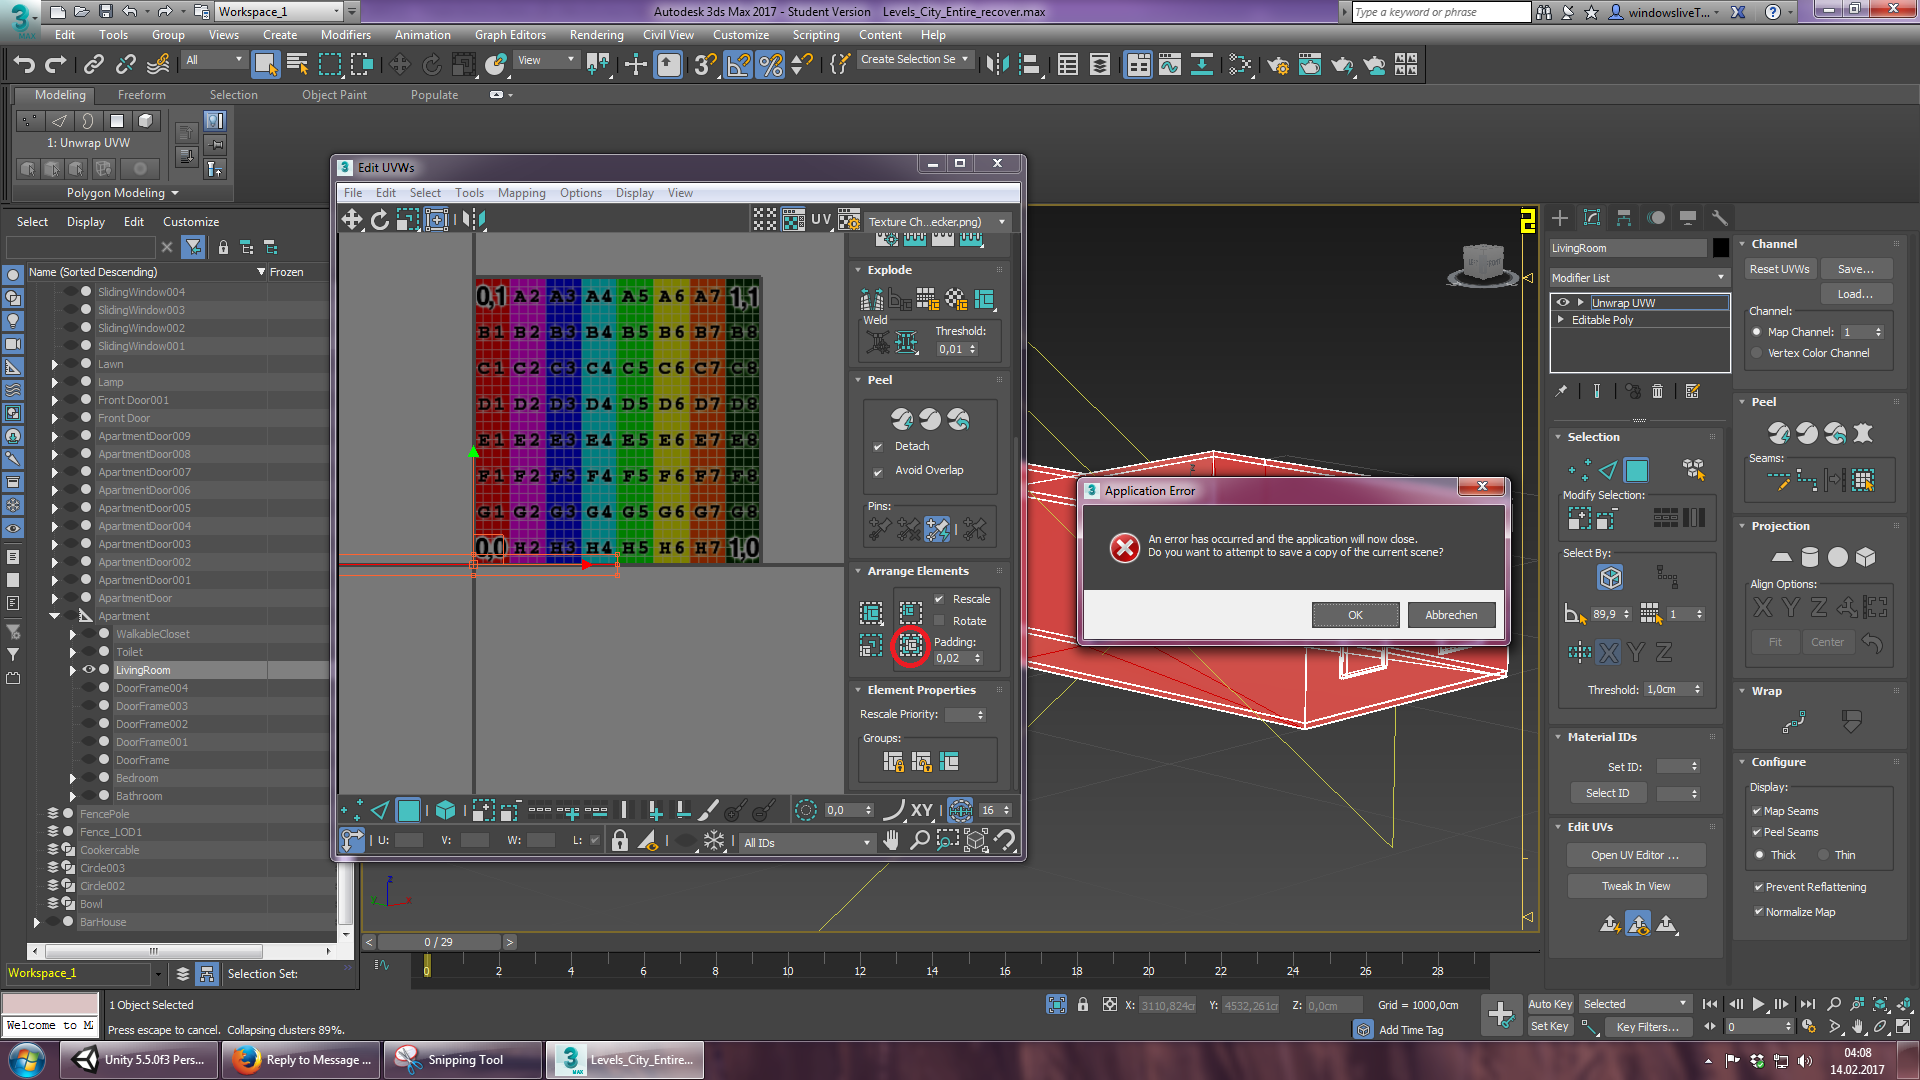 3ds Max 2017 is filled with bugs, glitches and crashes ...